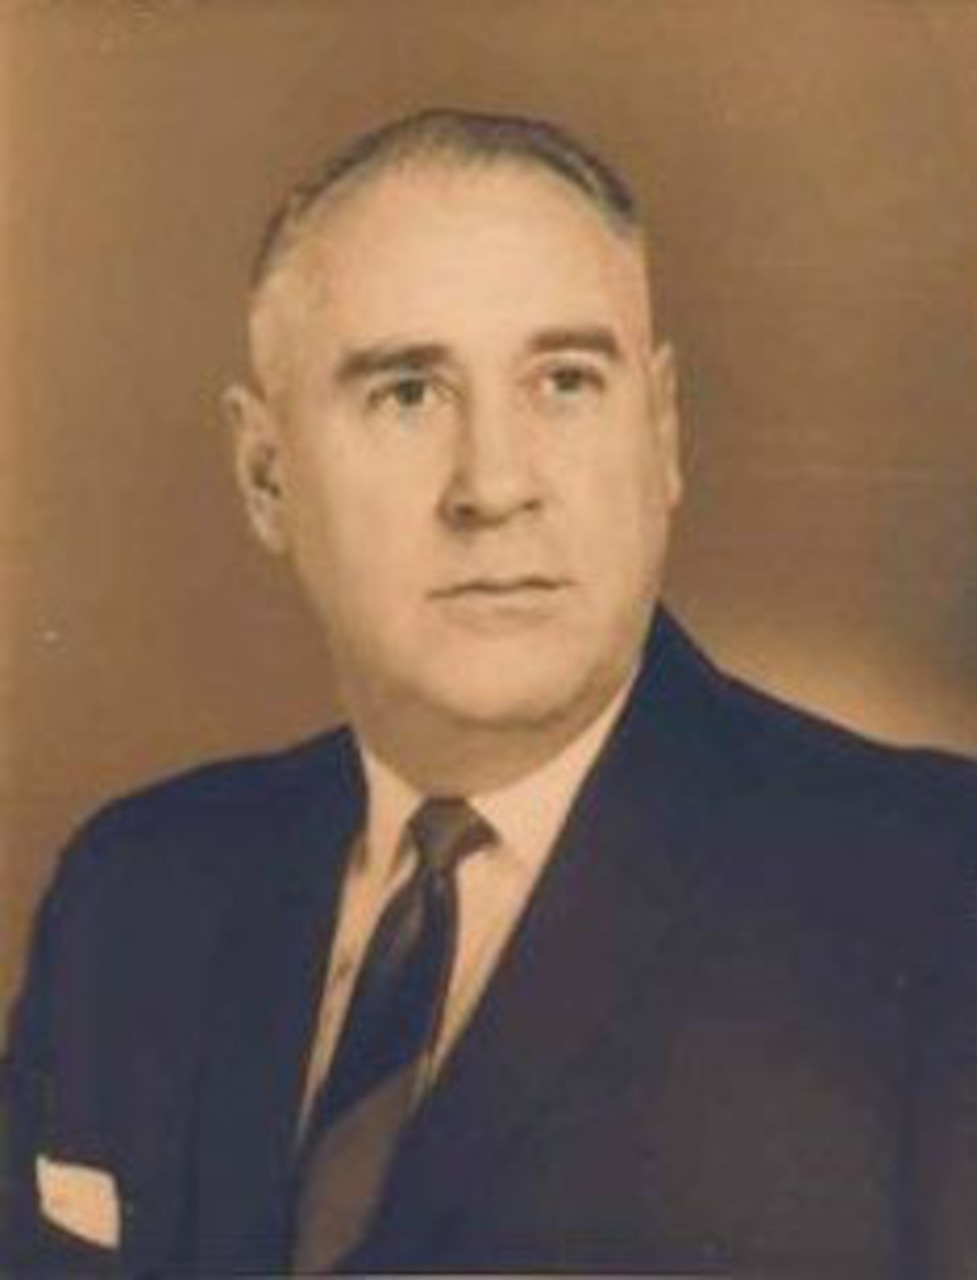 A man in a suit, tie and pocket square poses for an official photo.